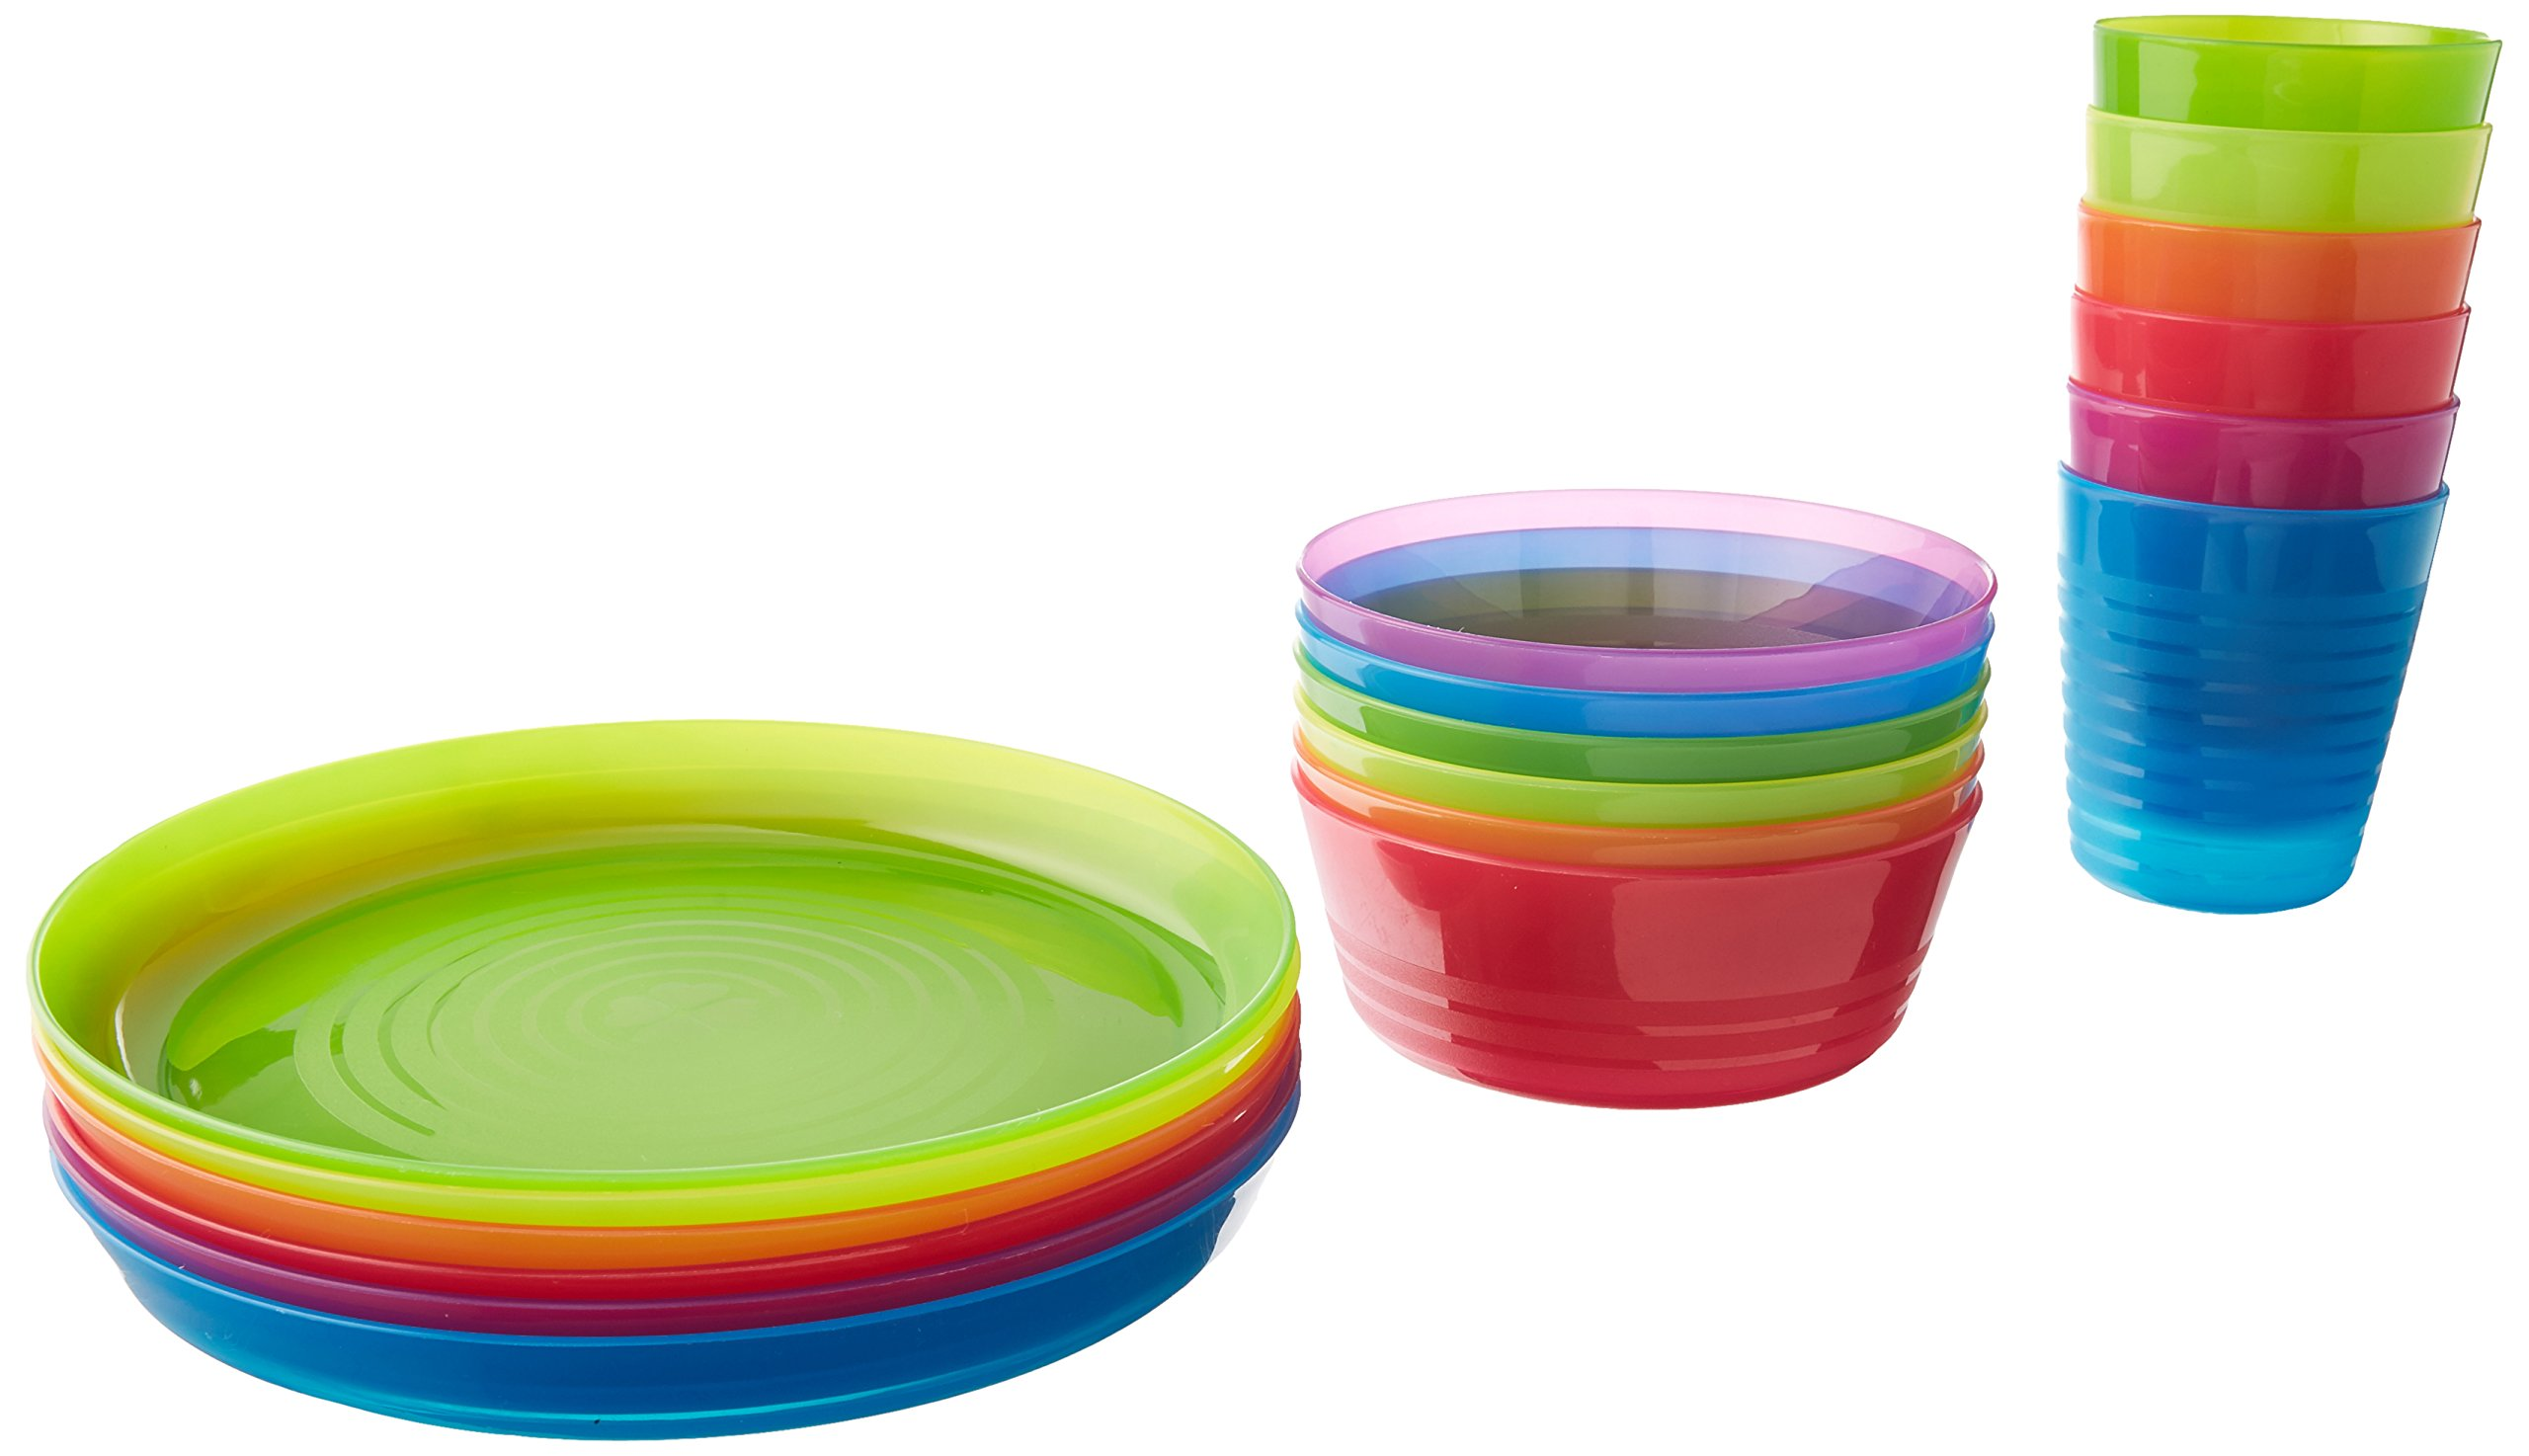 IKEA - KALAS Children Color Bowl, Tumbler and Plate Sets X6 Each (Set of 18) by IKEA (Image #1)